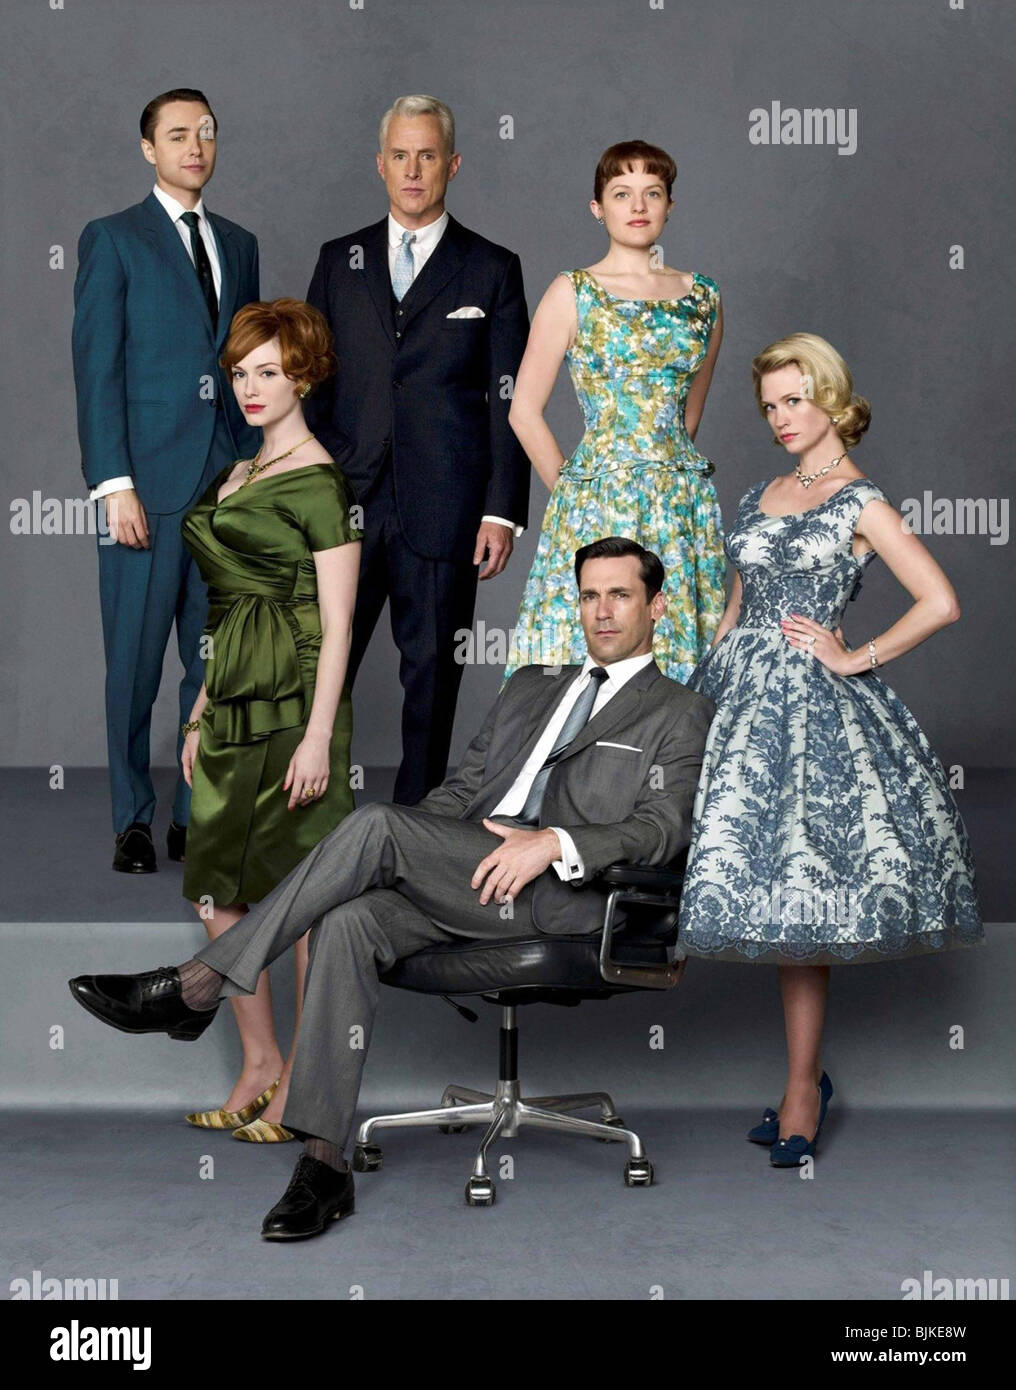 MAD MEN (TV) (2007) CHRISTINA HENDRICKS, ELISABETH MOSS, JANUARY JONES, VINCENT KARTHEISER, JOHN SLATTERY, JON HAMM - Stock Image